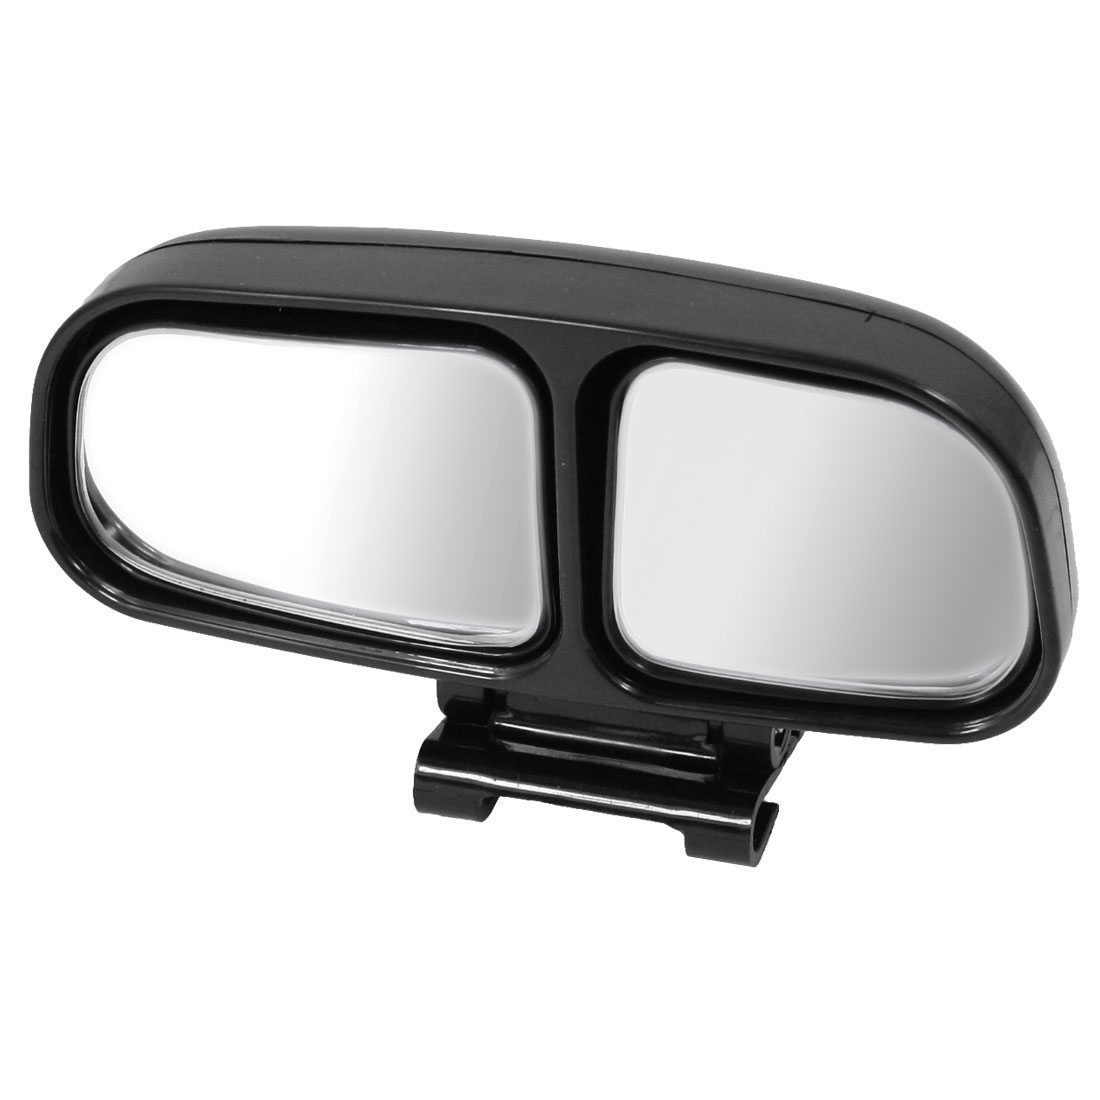 Auto Car Black Plastic Shell Left Side Adjustable Wide Angle Reverse Rear View Mirror